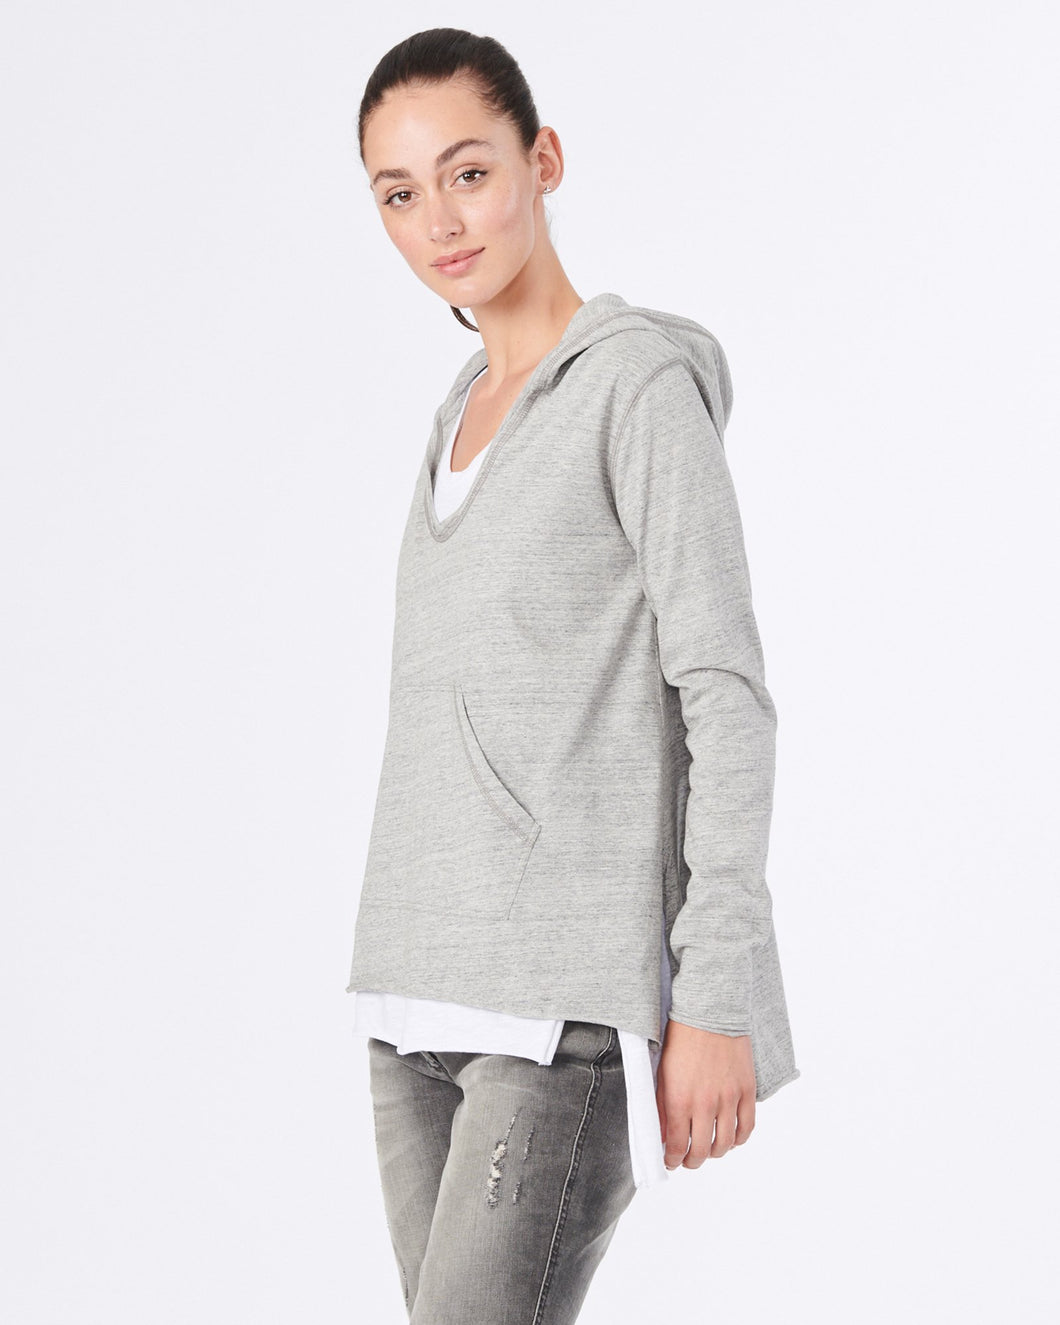 Jac and Mooki Hoodie Jumper Sweater long fit, Jac & Mooki Harvey Hoodie Basic State